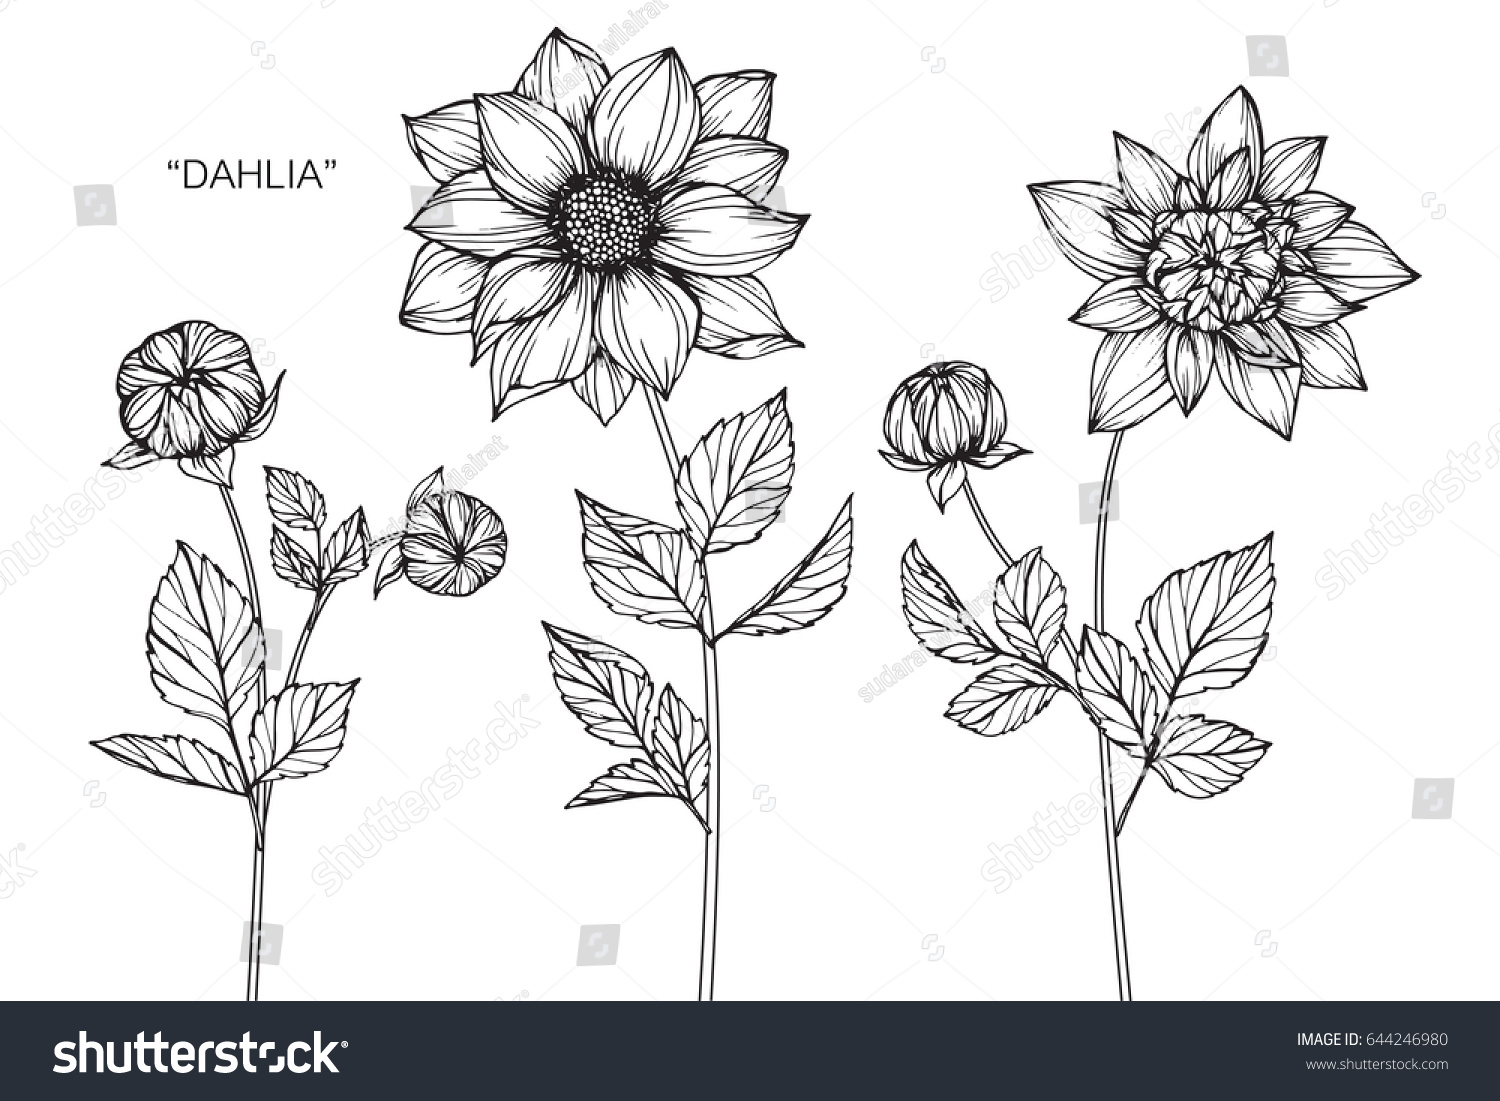 Dahlia Flowers Drawing And Sketch With Line Art On White Backgrounds